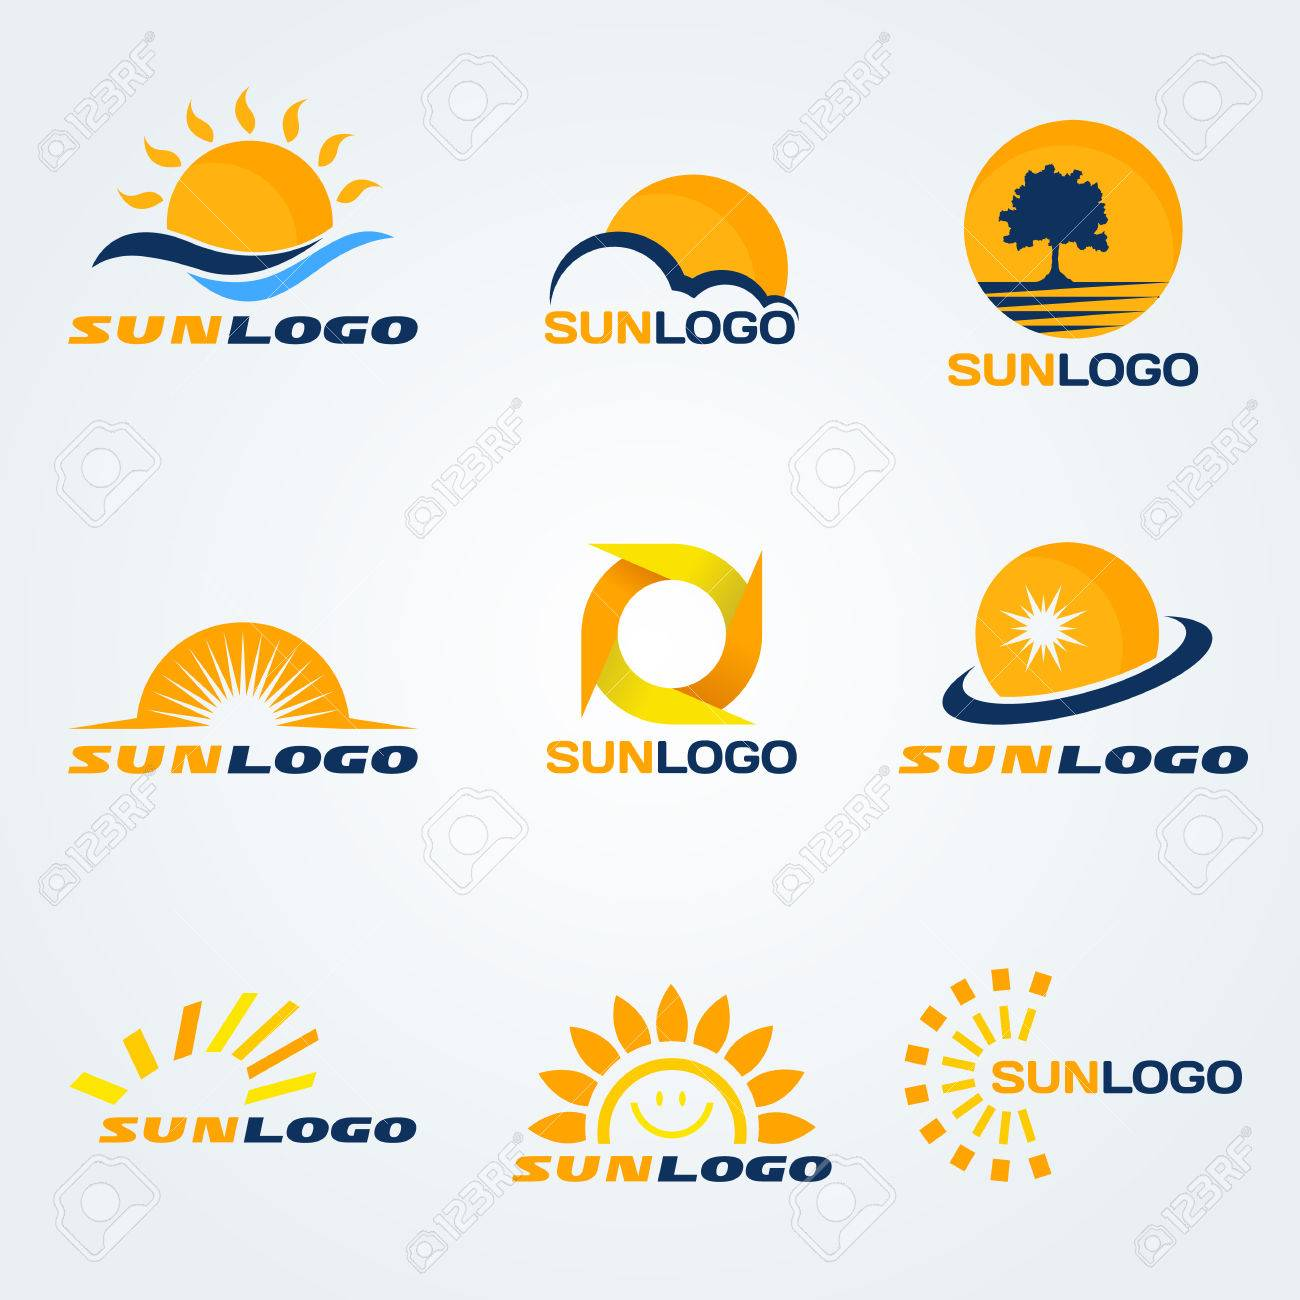 Sun logo (have Trees, clouds and water to composition) set art design - 55982945